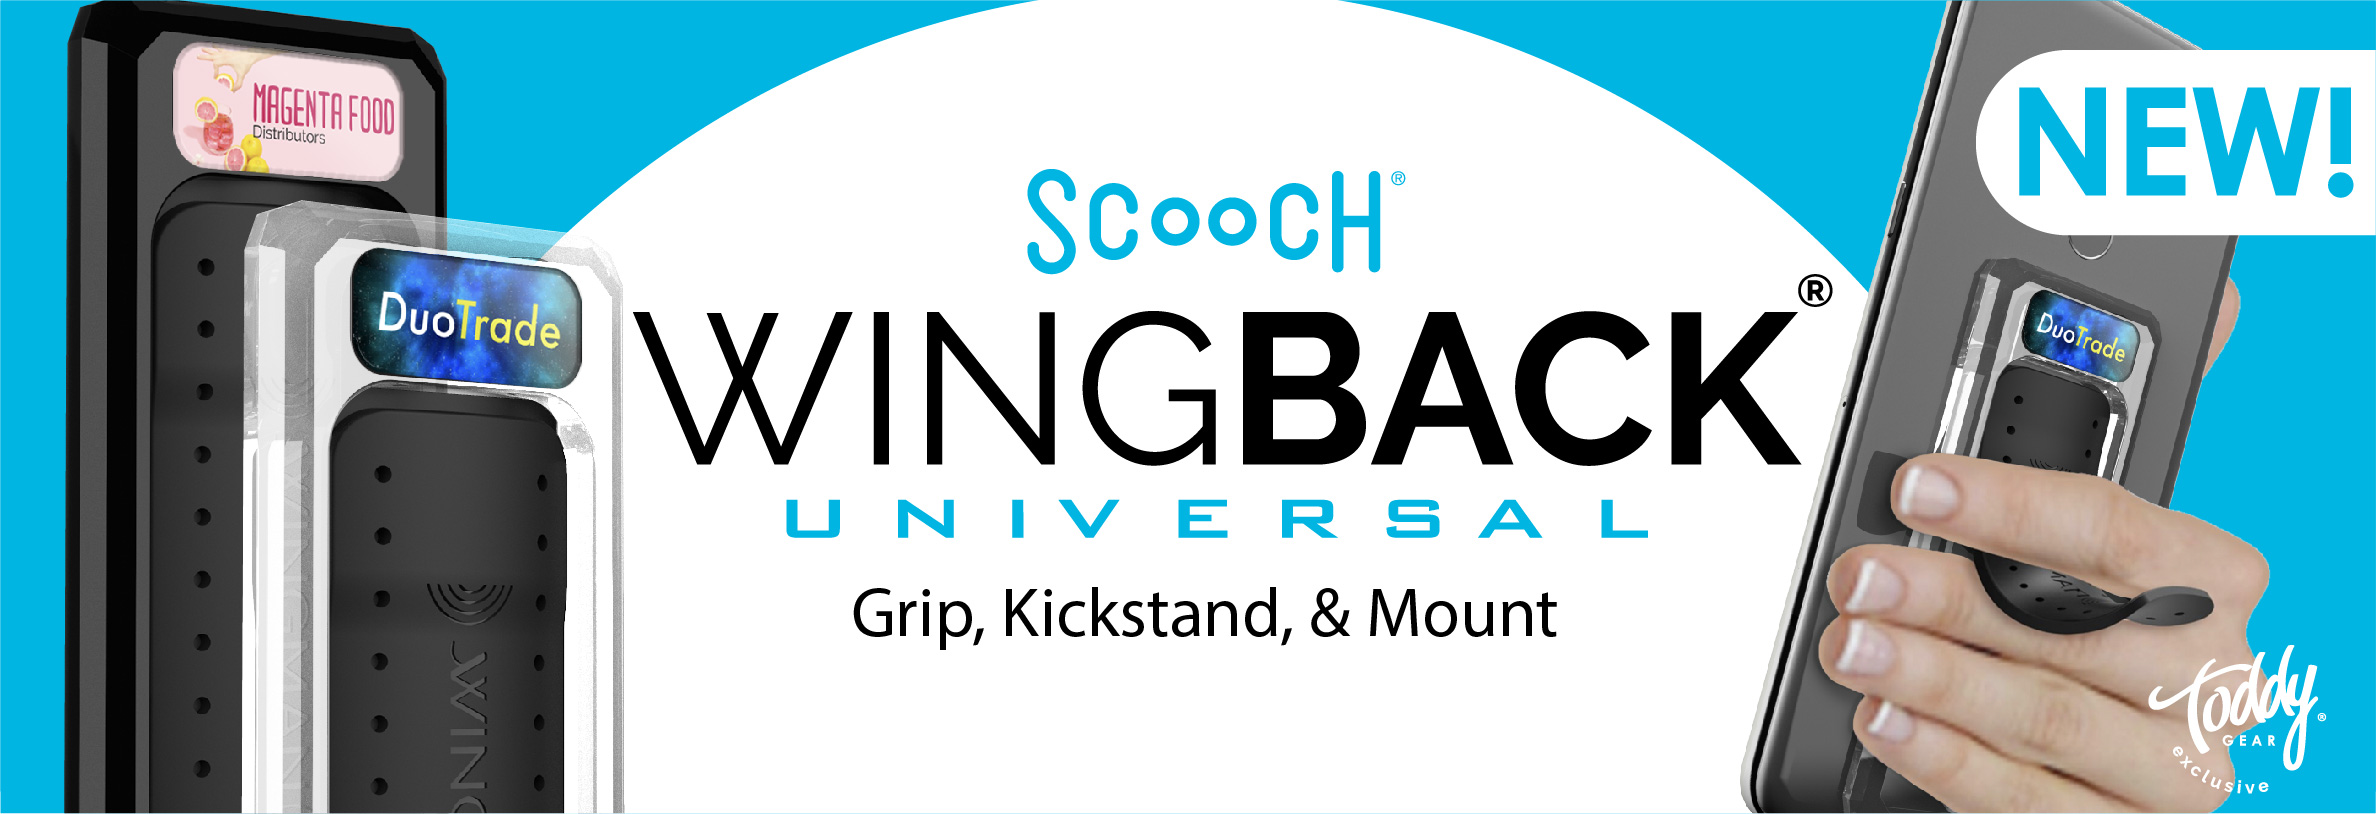 Scooch Wingback Banner Image